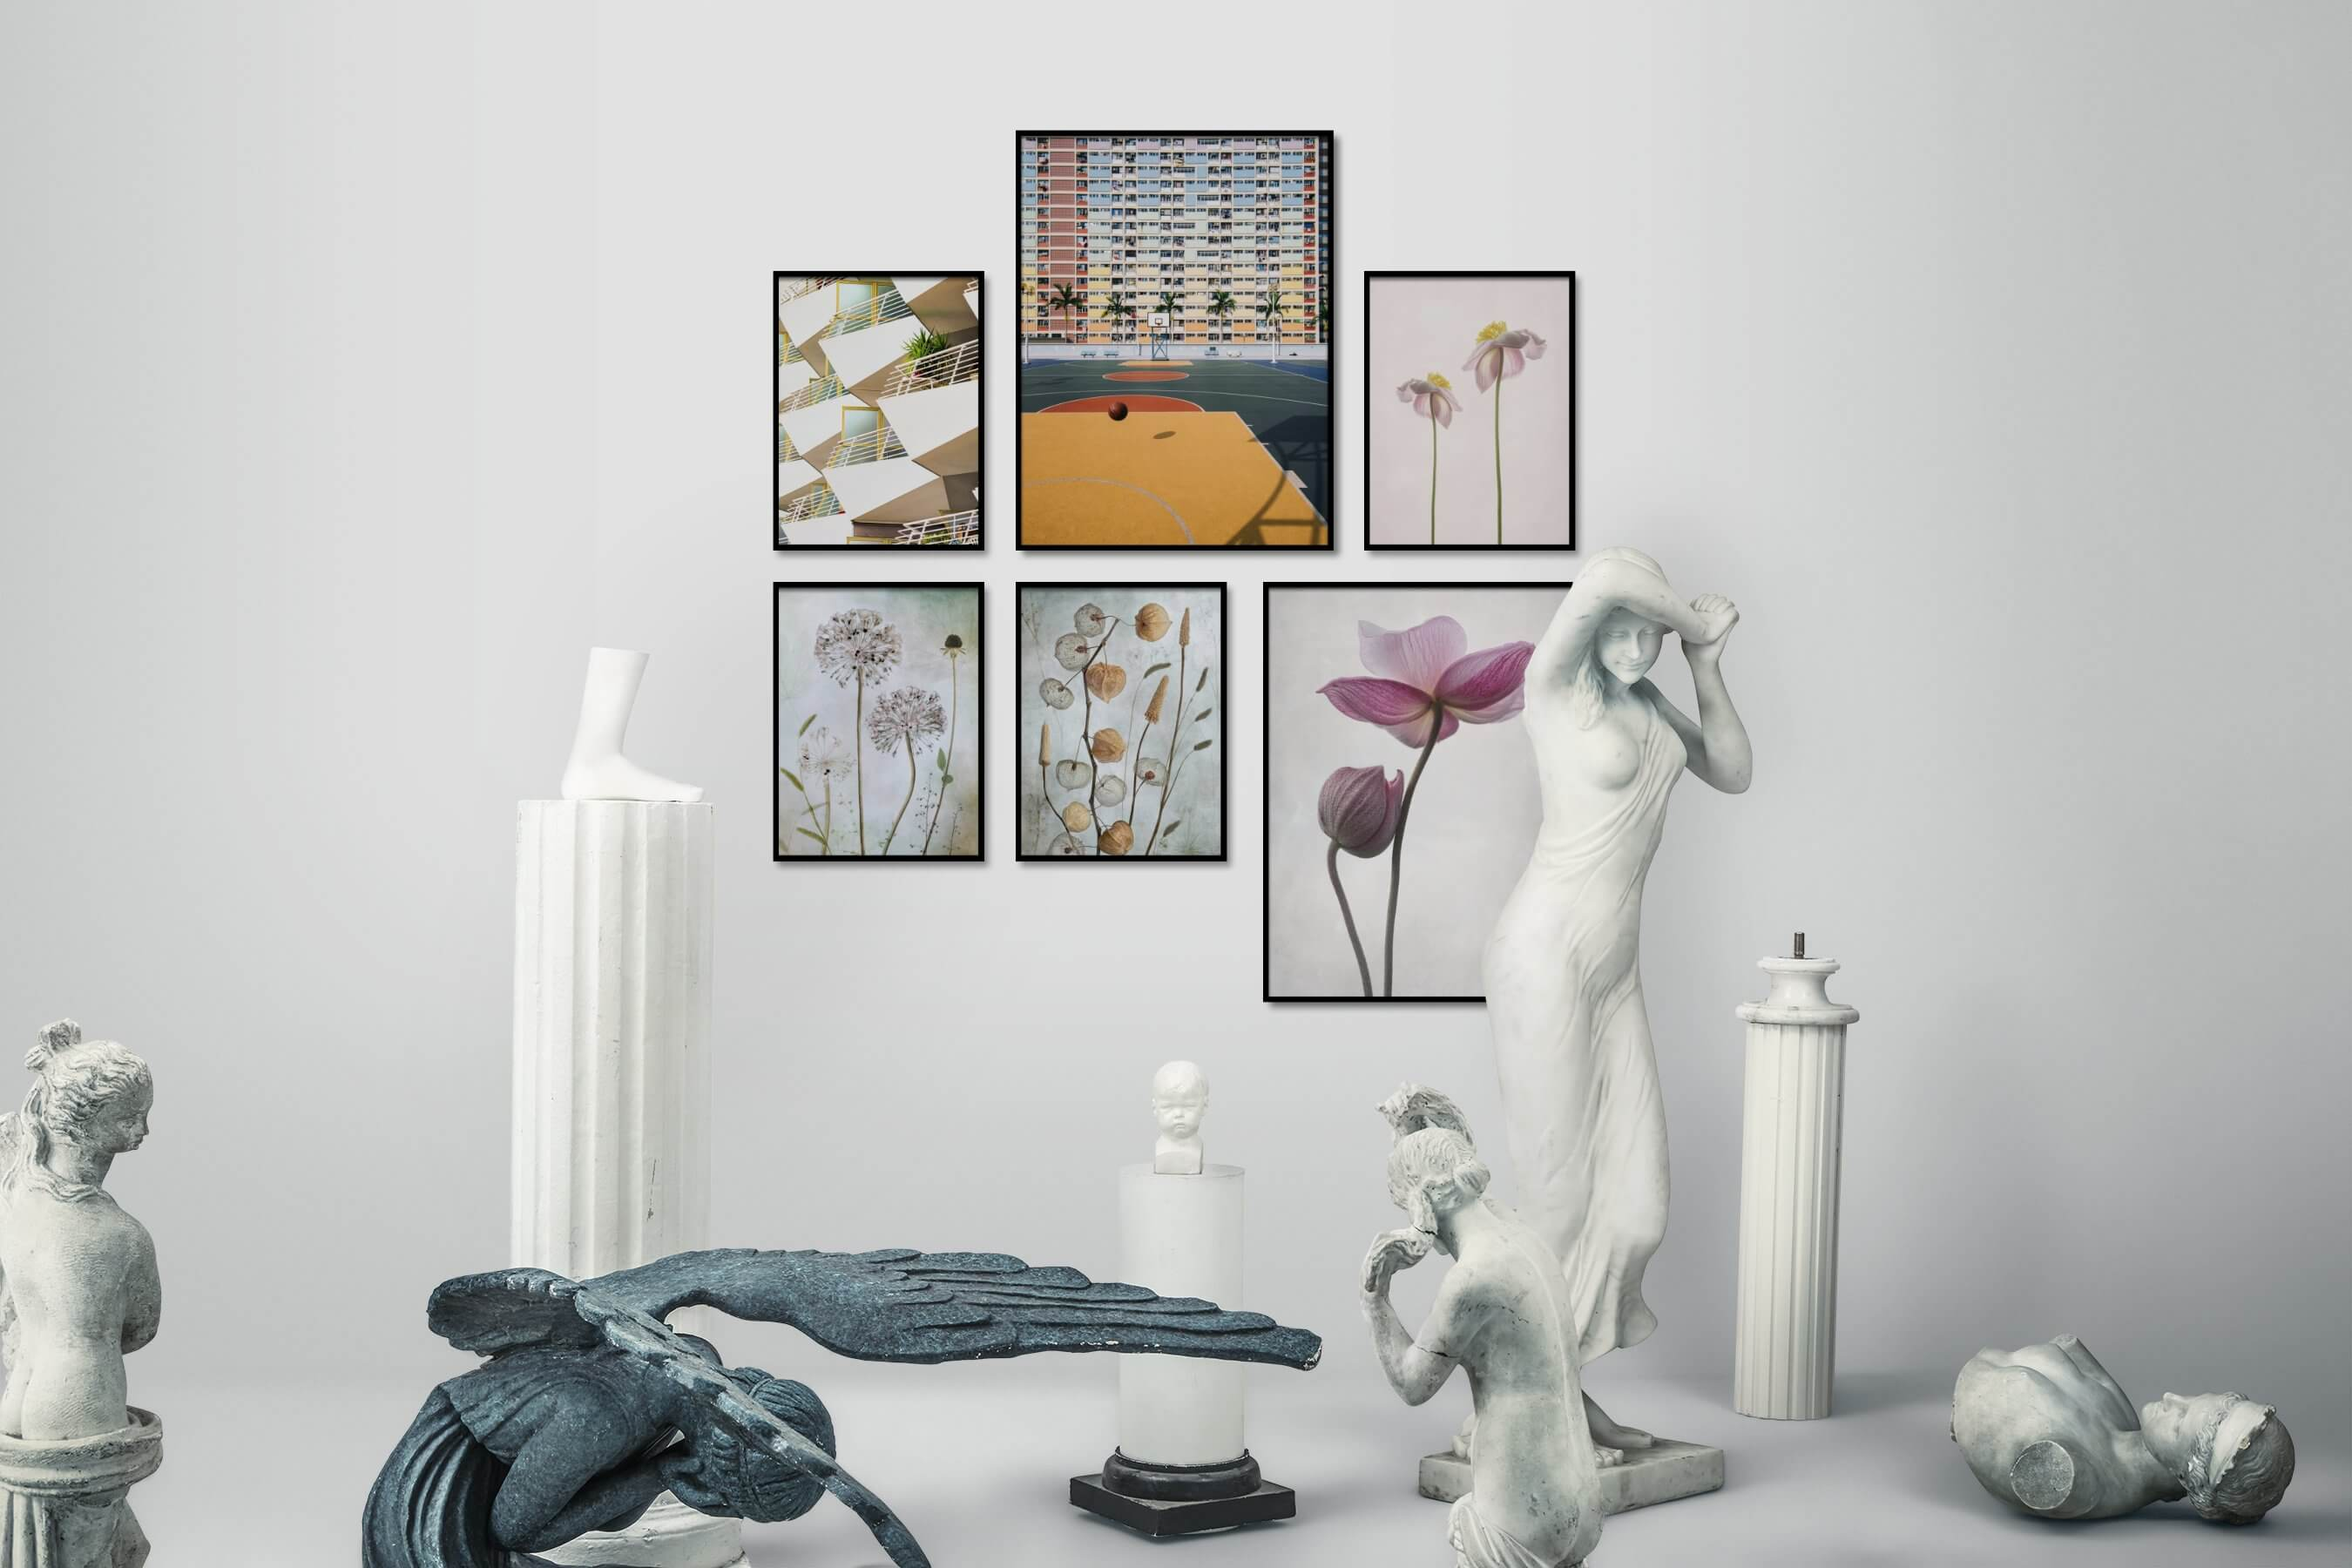 Gallery wall idea with six framed pictures arranged on a wall depicting For the Maximalist, City Life, Vintage, Flowers & Plants, and For the Minimalist